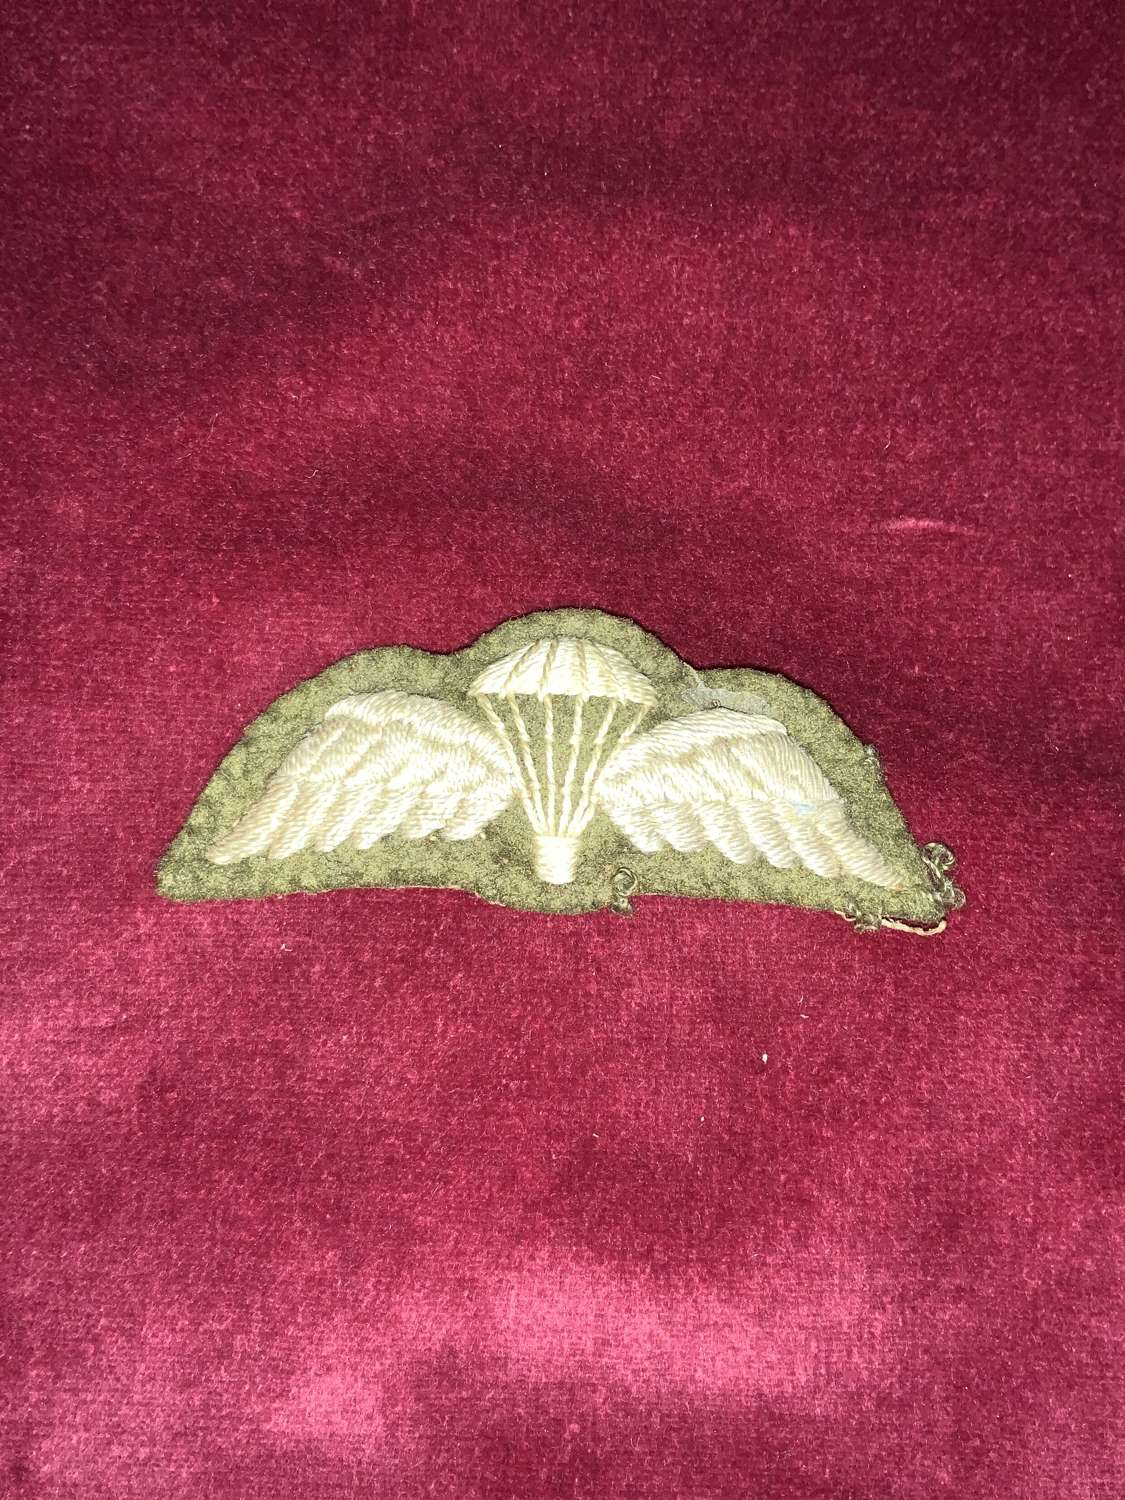 Parachutists Qualification Wing Padded.